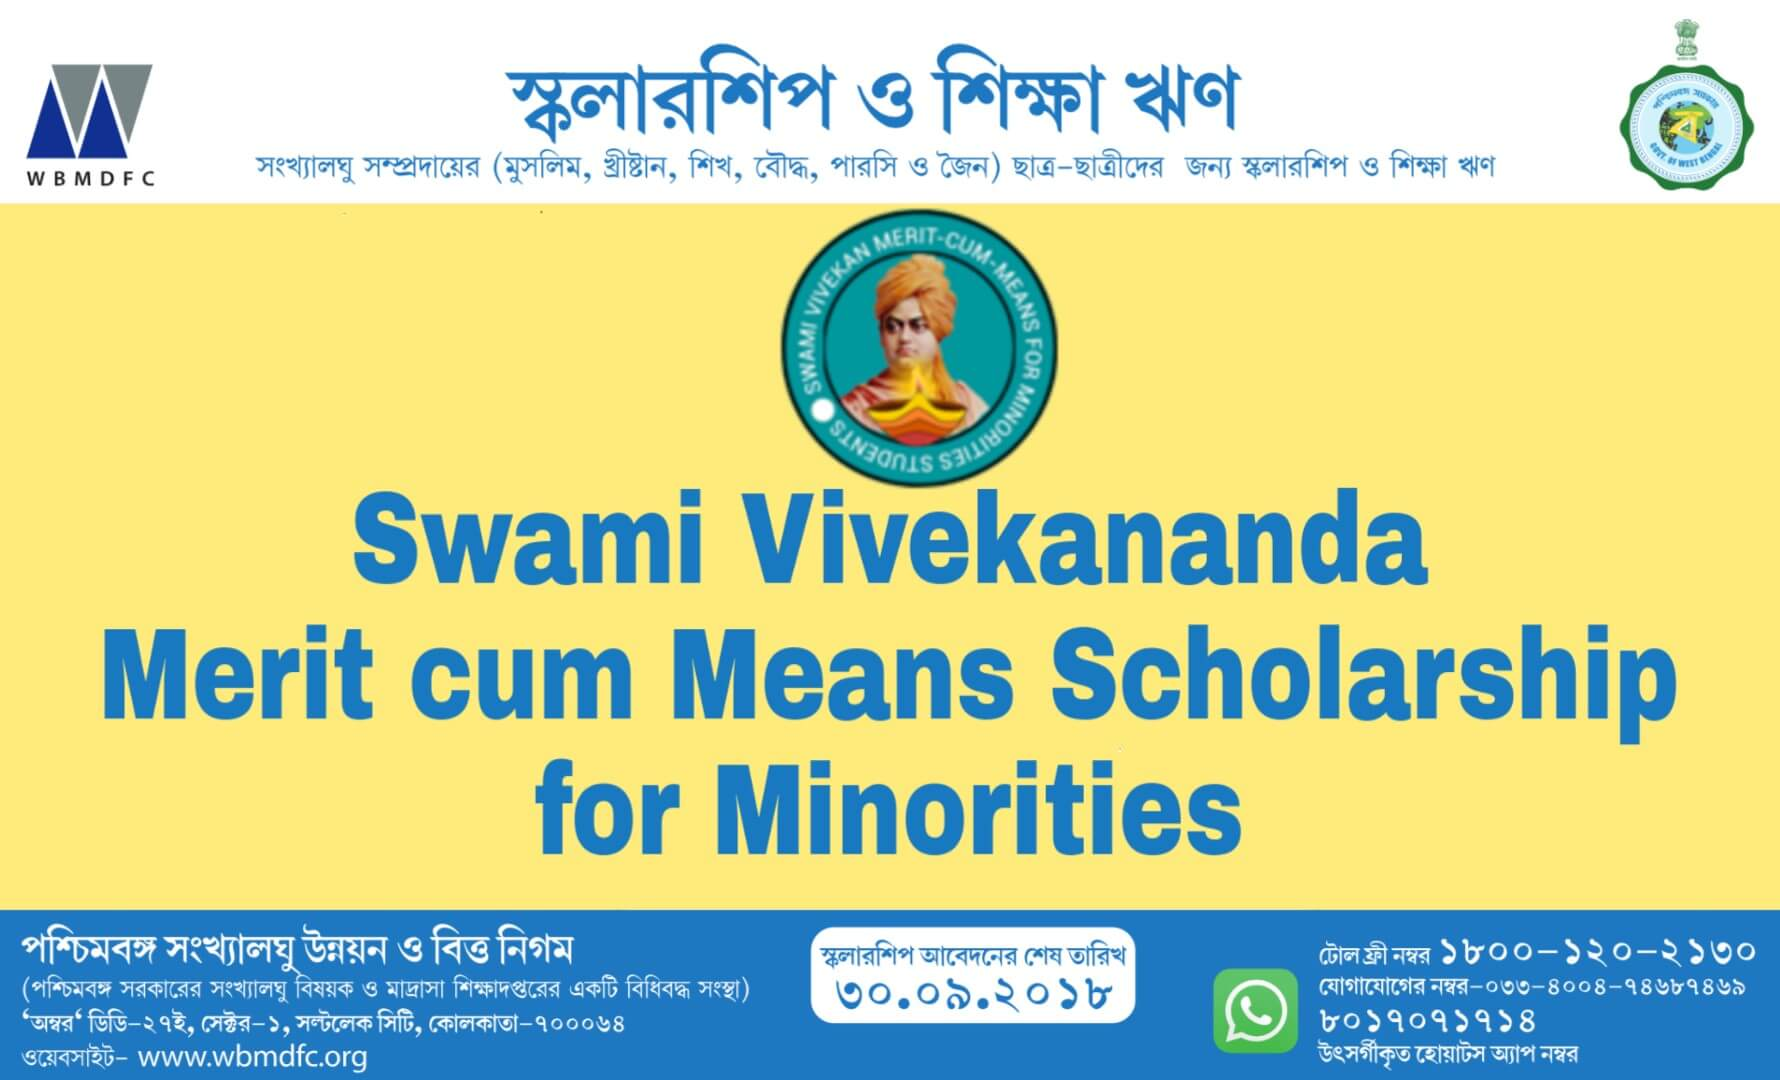 Swami Vivekananda Merit cum Means Scholarship Minorities